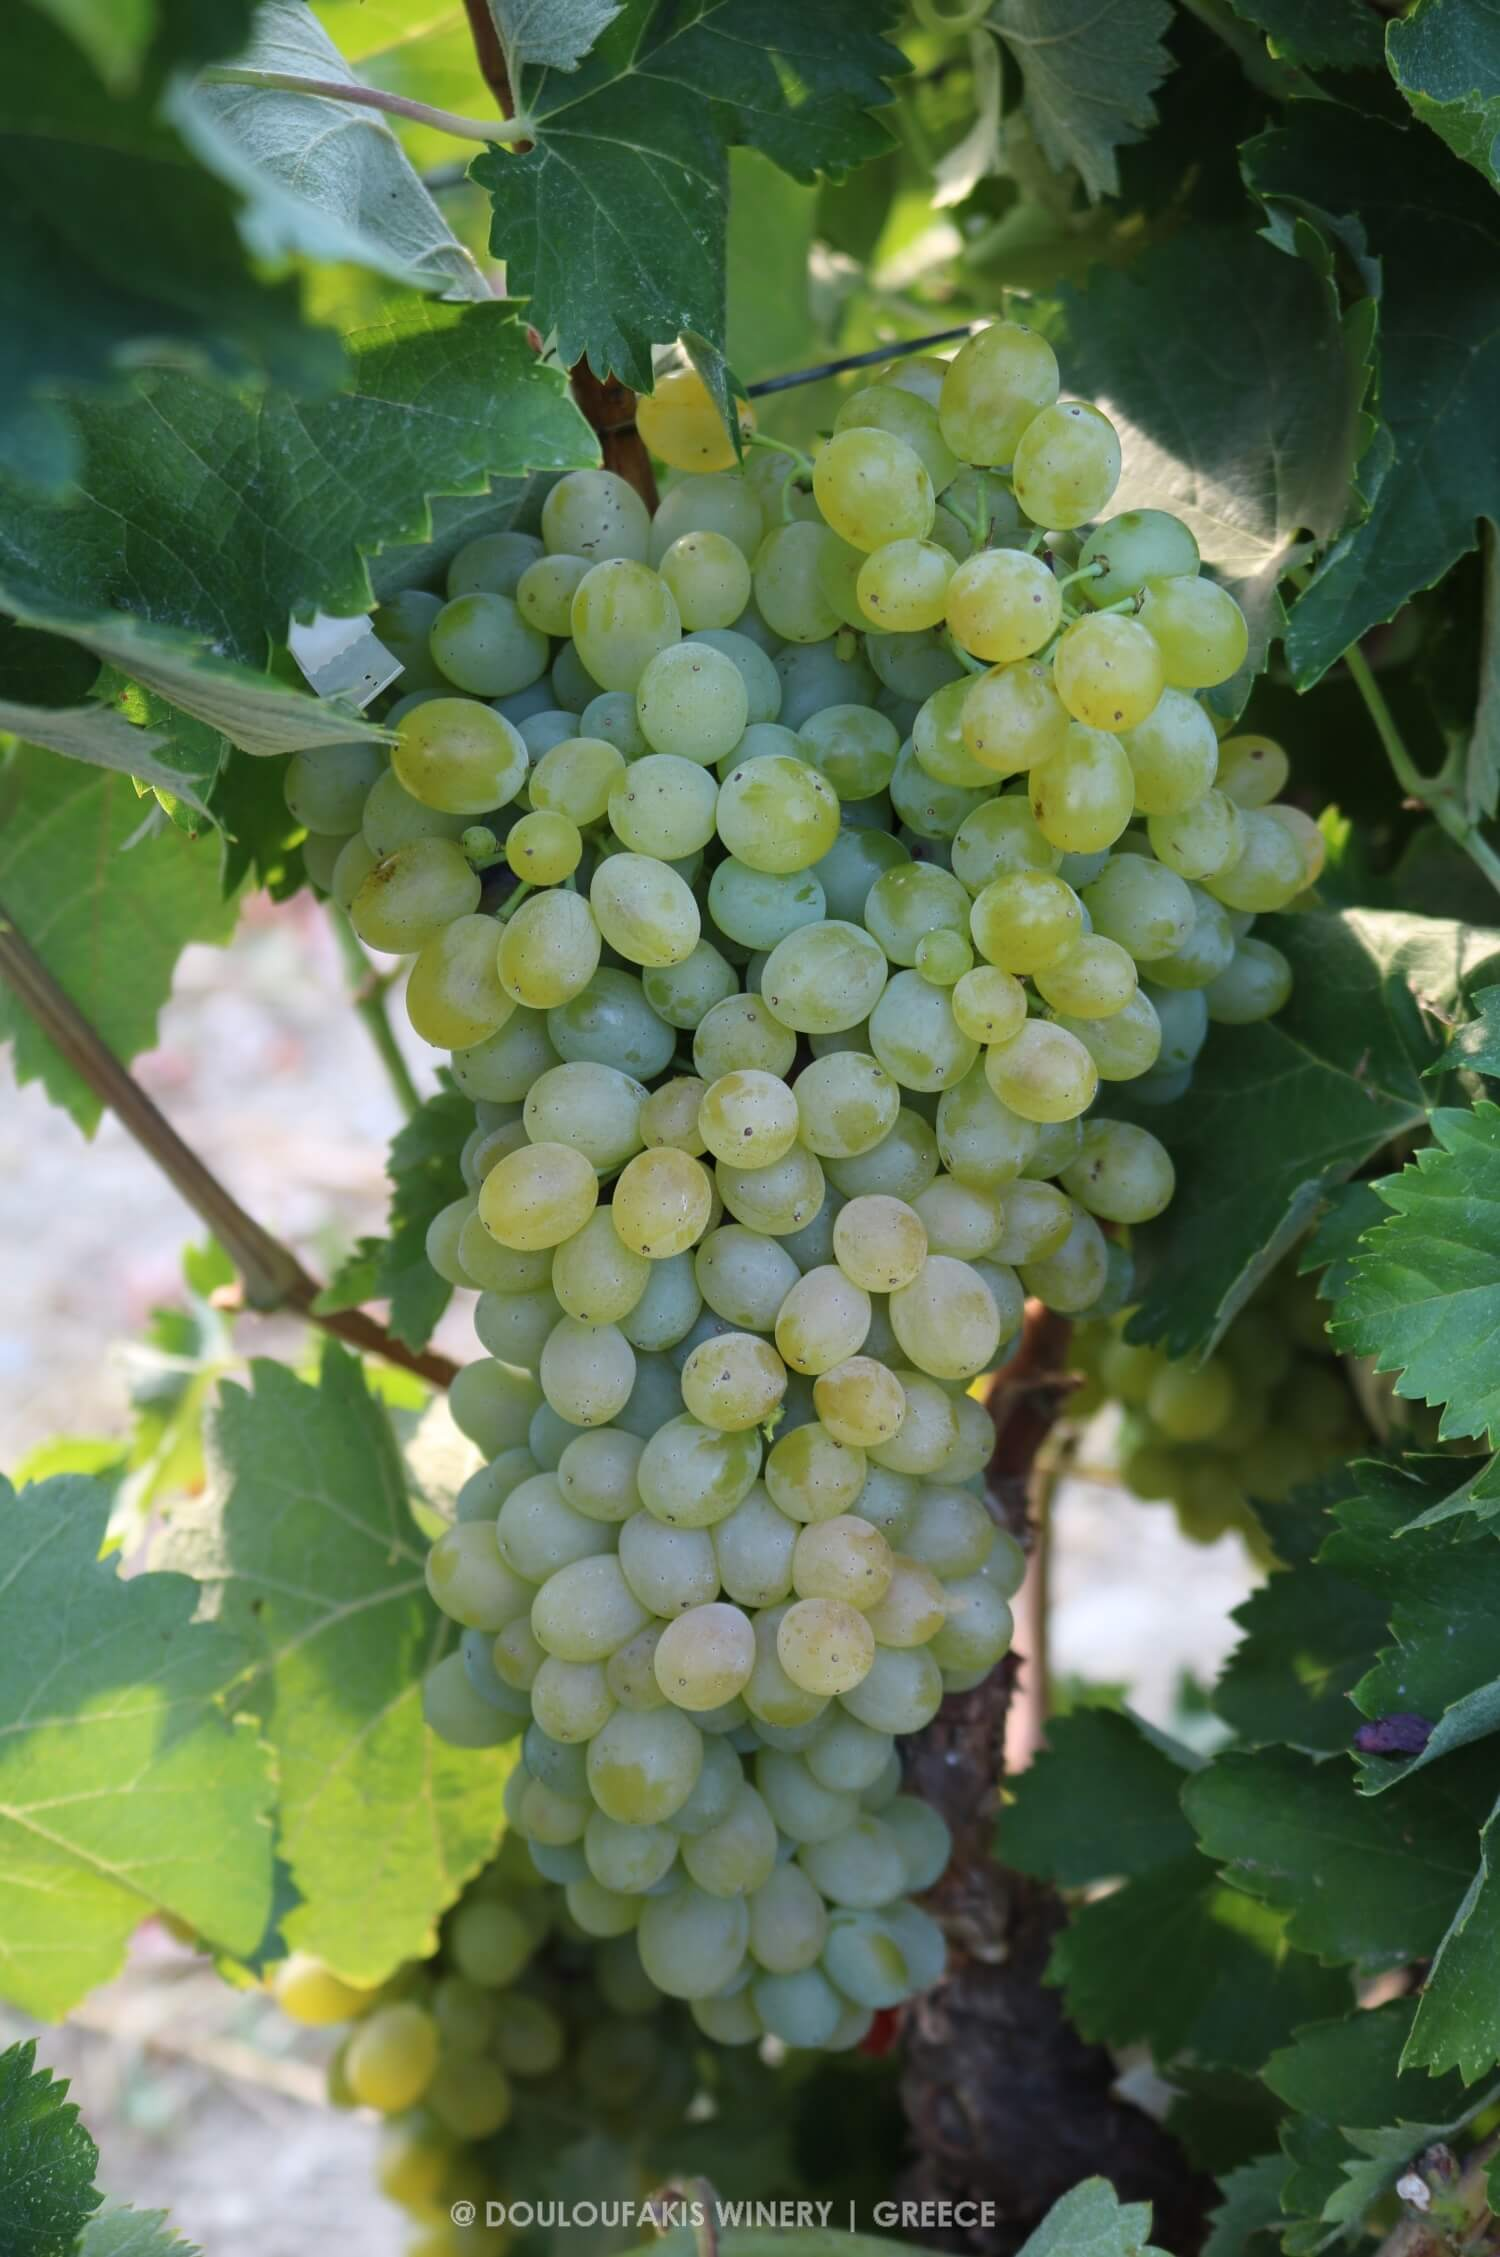 THE VINE DESCRIPTION OF THE VIDIANO VARIETY